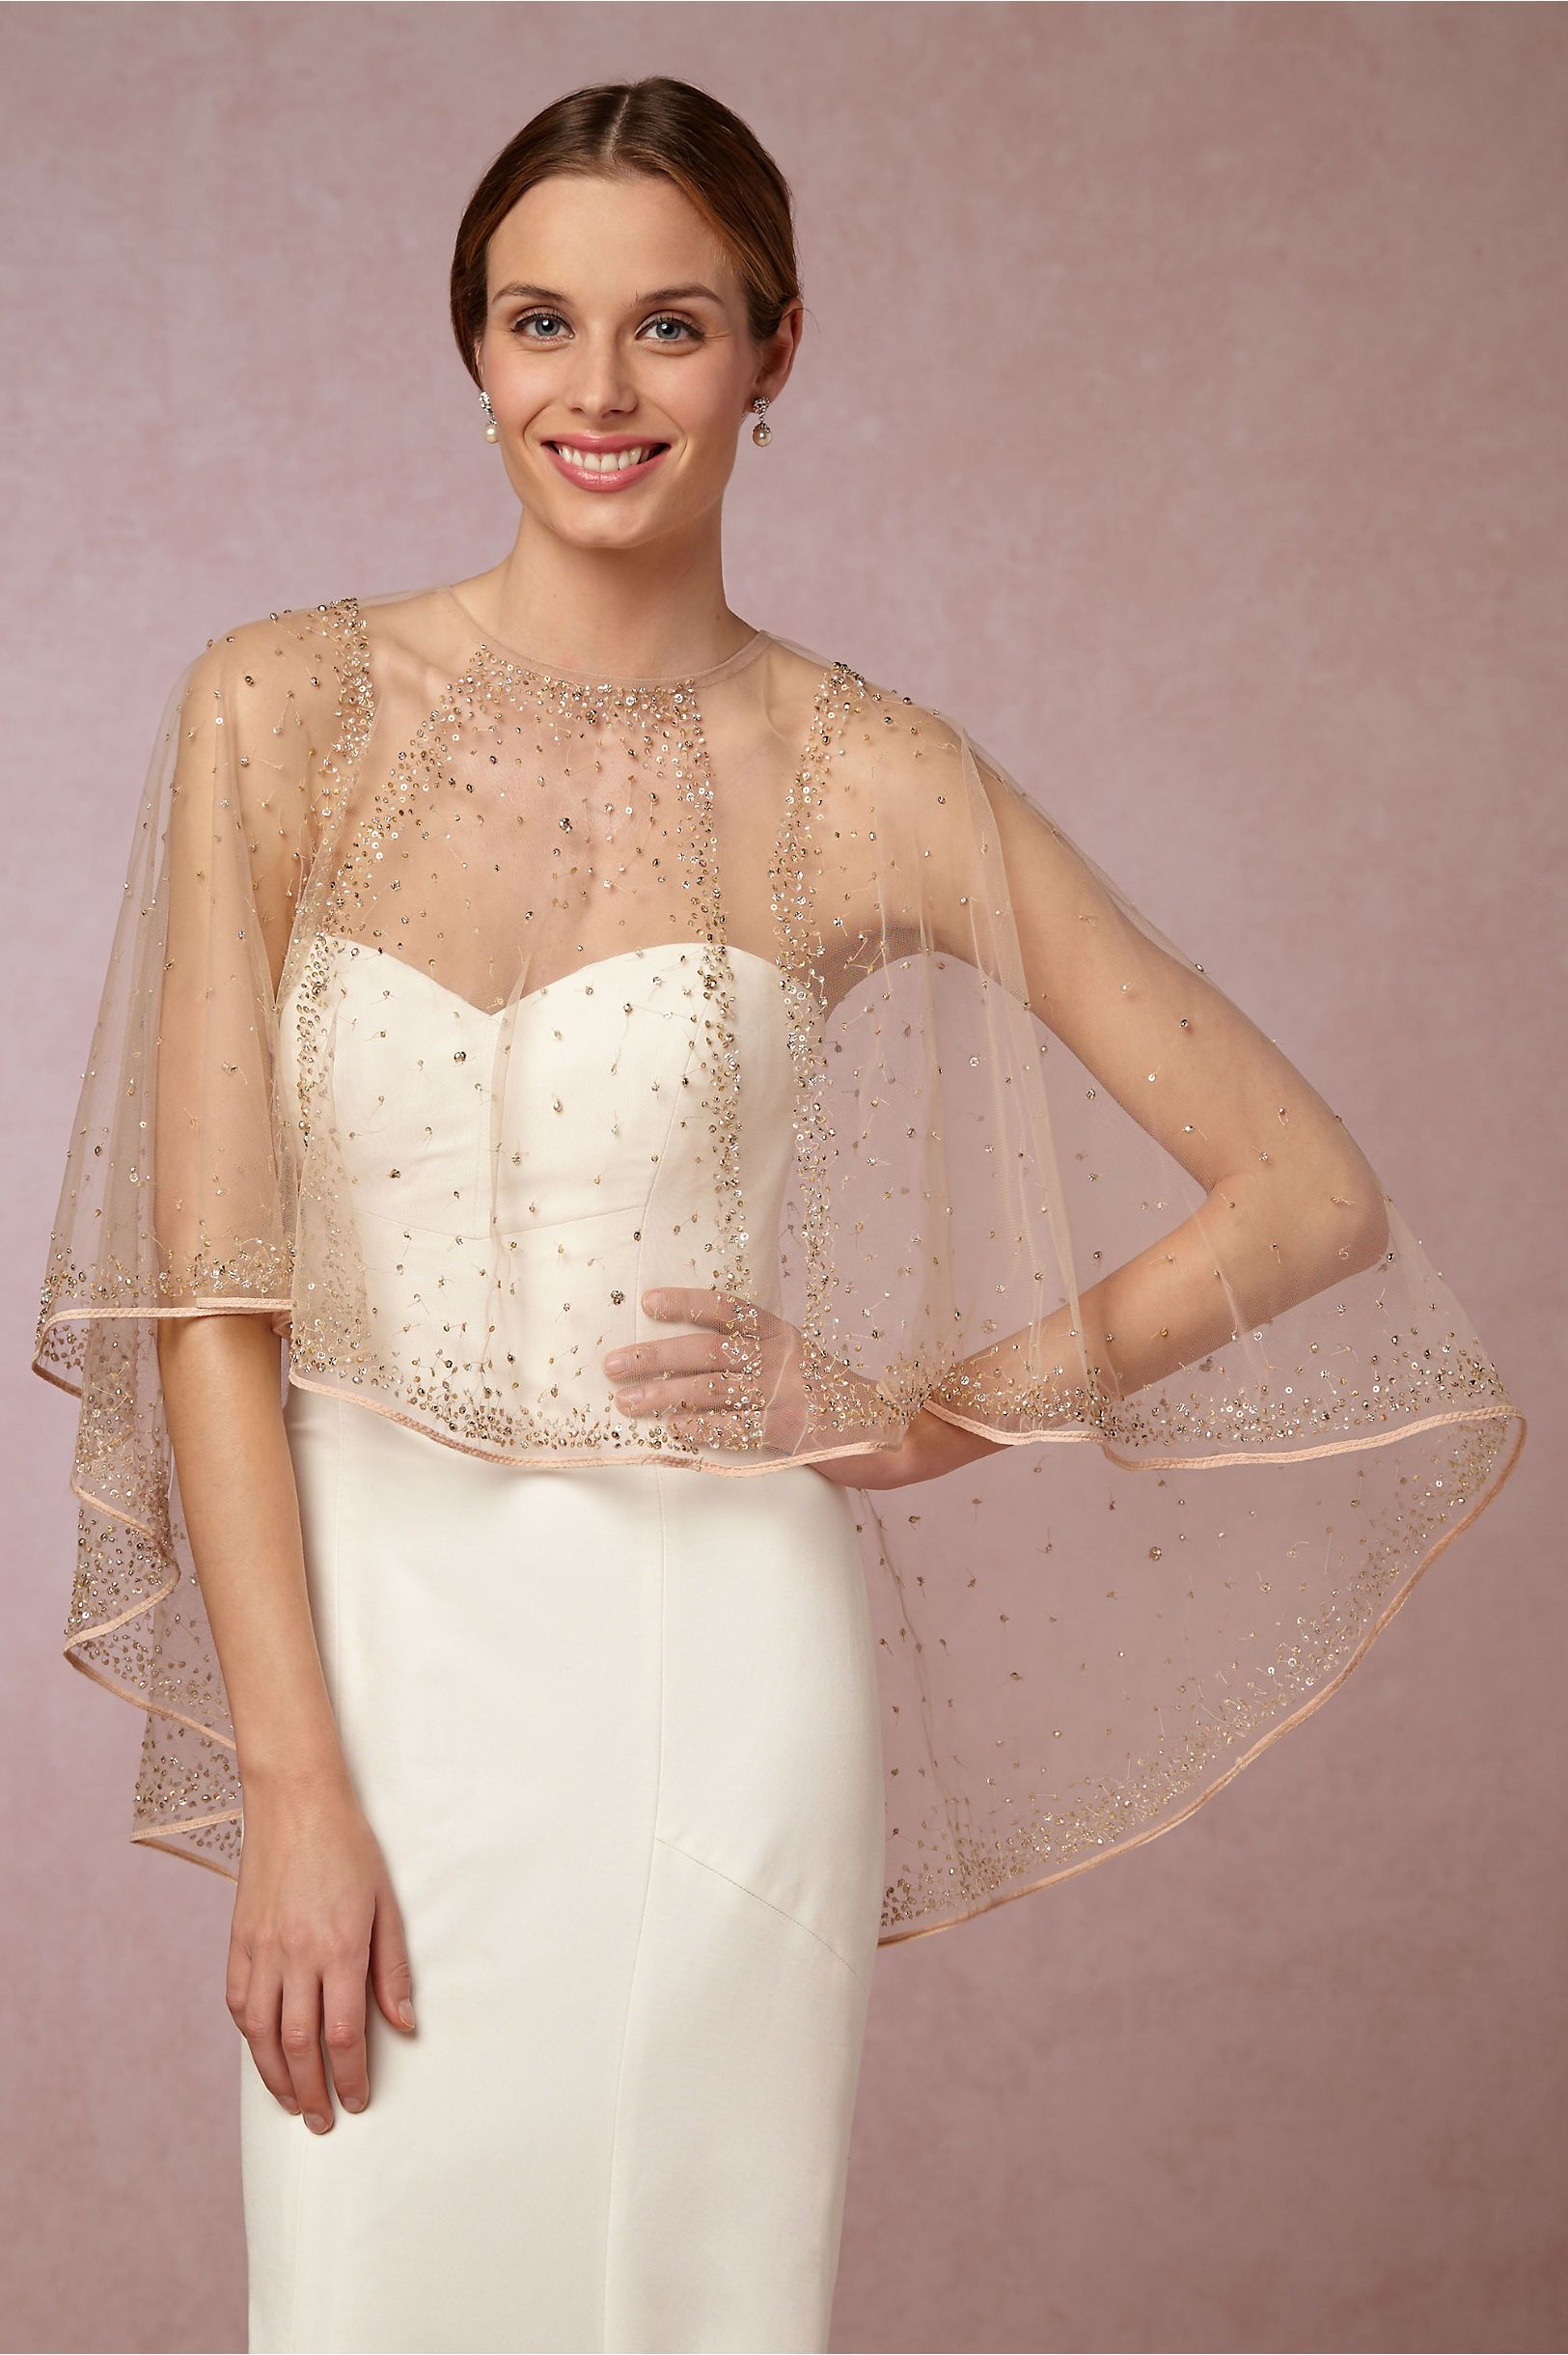 BHLDN Sonora Capelet in New at BHLDN | The Big Someday | Pinterest ...